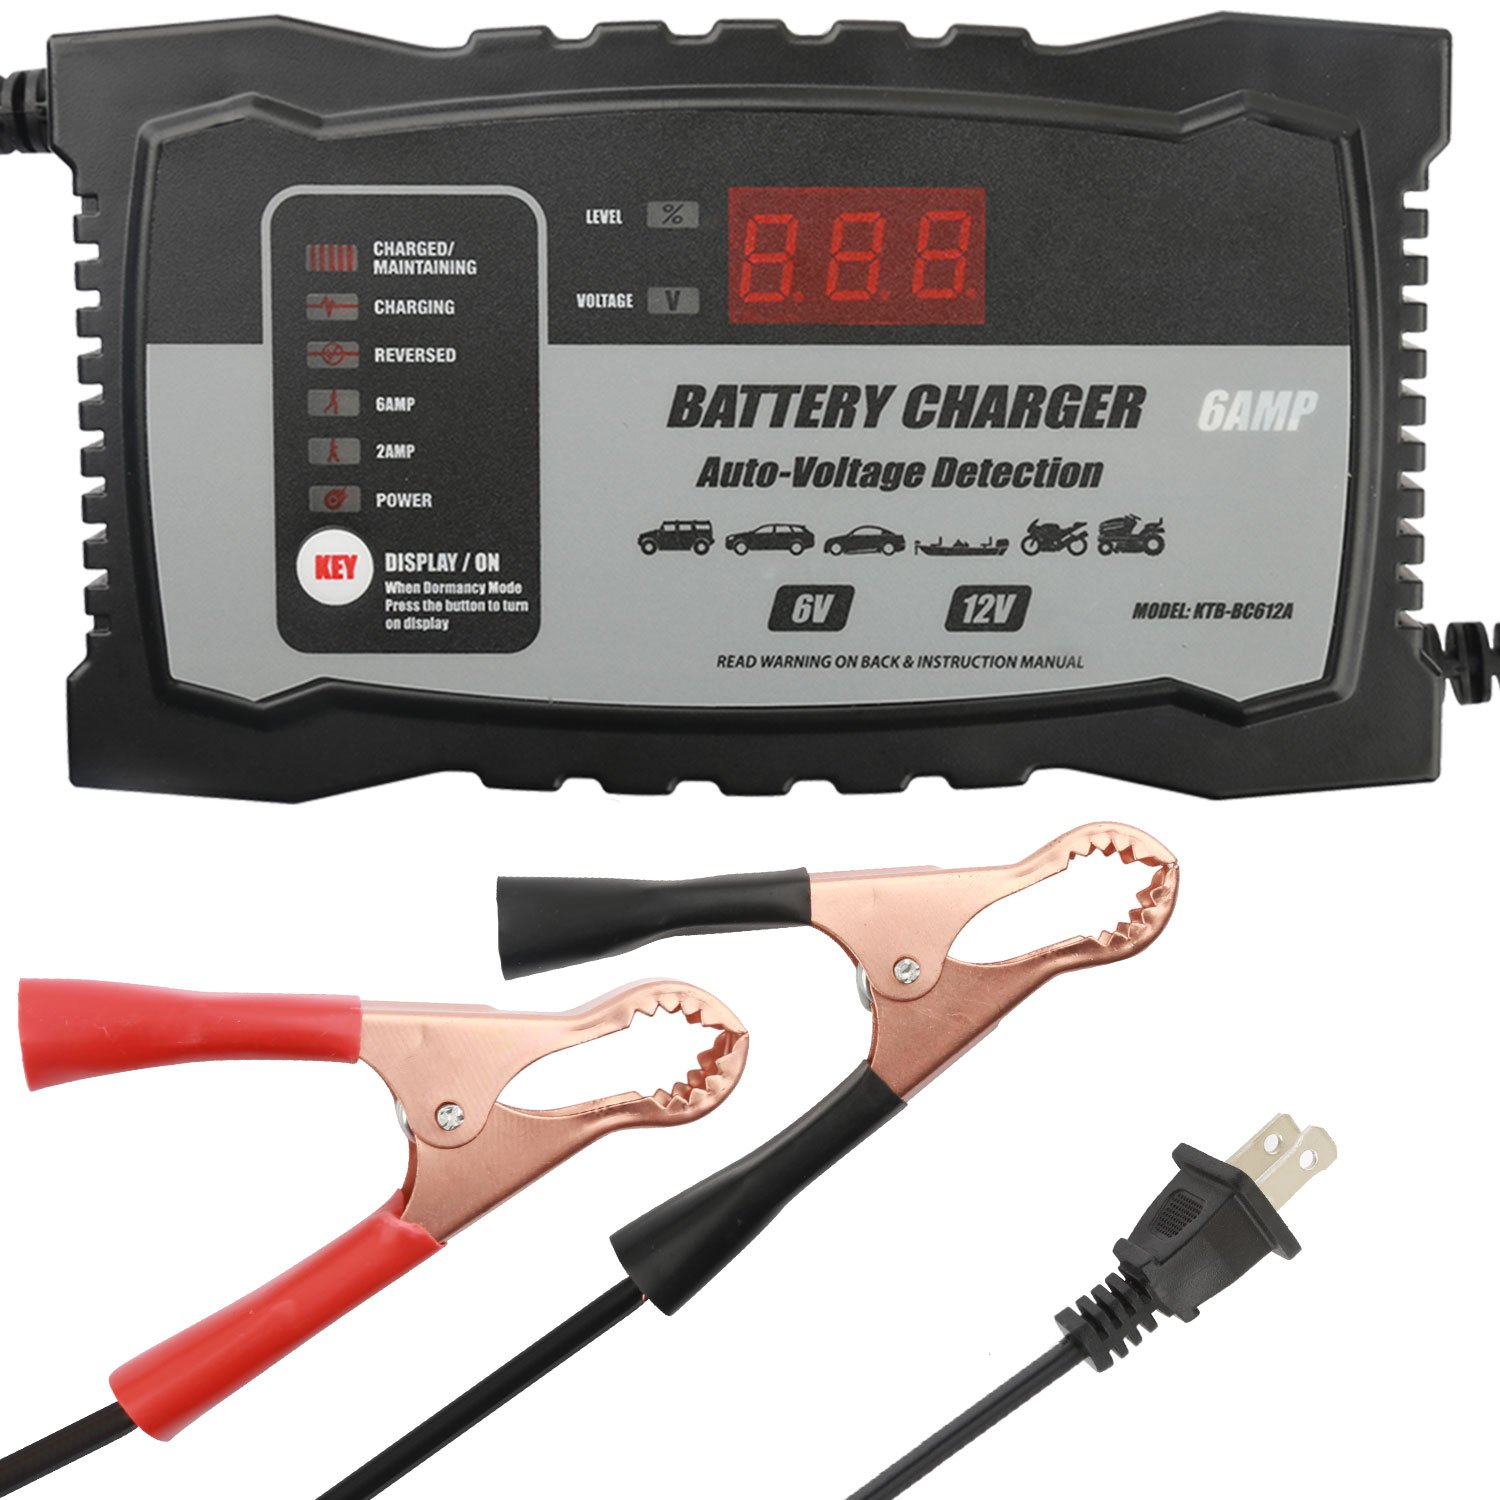 Charger Maintainer 6Amp Battery Charger Auto Voltage Detection 6Volt 12Volt with 2Amp Car Battery Charger Float Charger Maintainer for Lead Acid Battery by Aoprofree